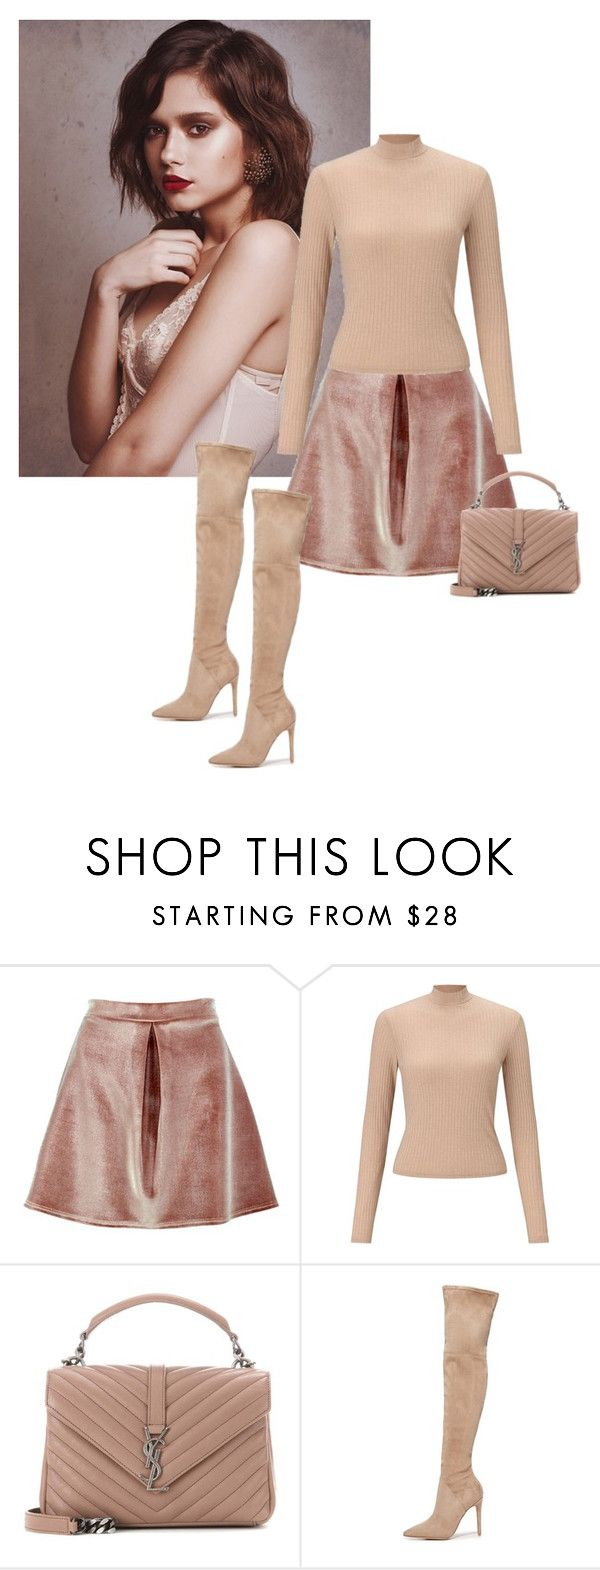 """""""Untitled #1445"""" by randeee ❤ liked on Polyvore featuring Boohoo, Miss Selfridge, Yves Saint Laurent and Kendall + Kylie"""